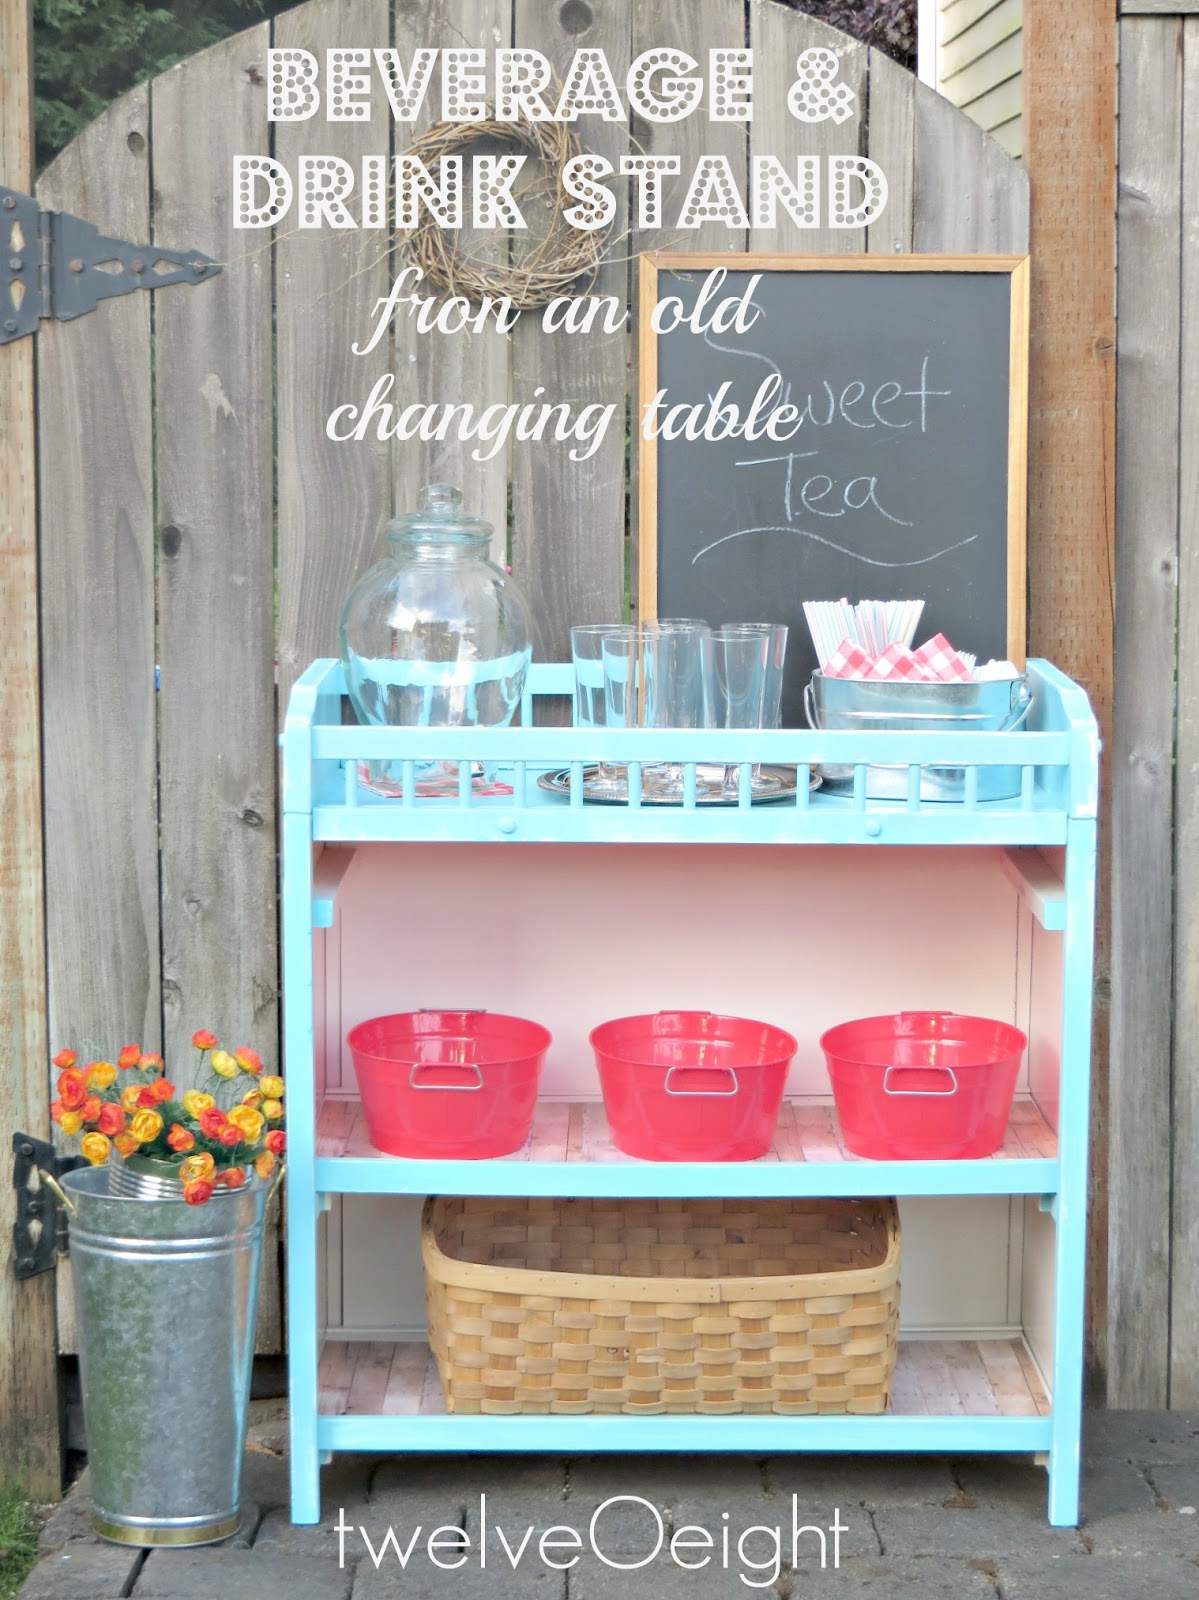 24 DIY Tutorials and Tips Home Stories A to Z